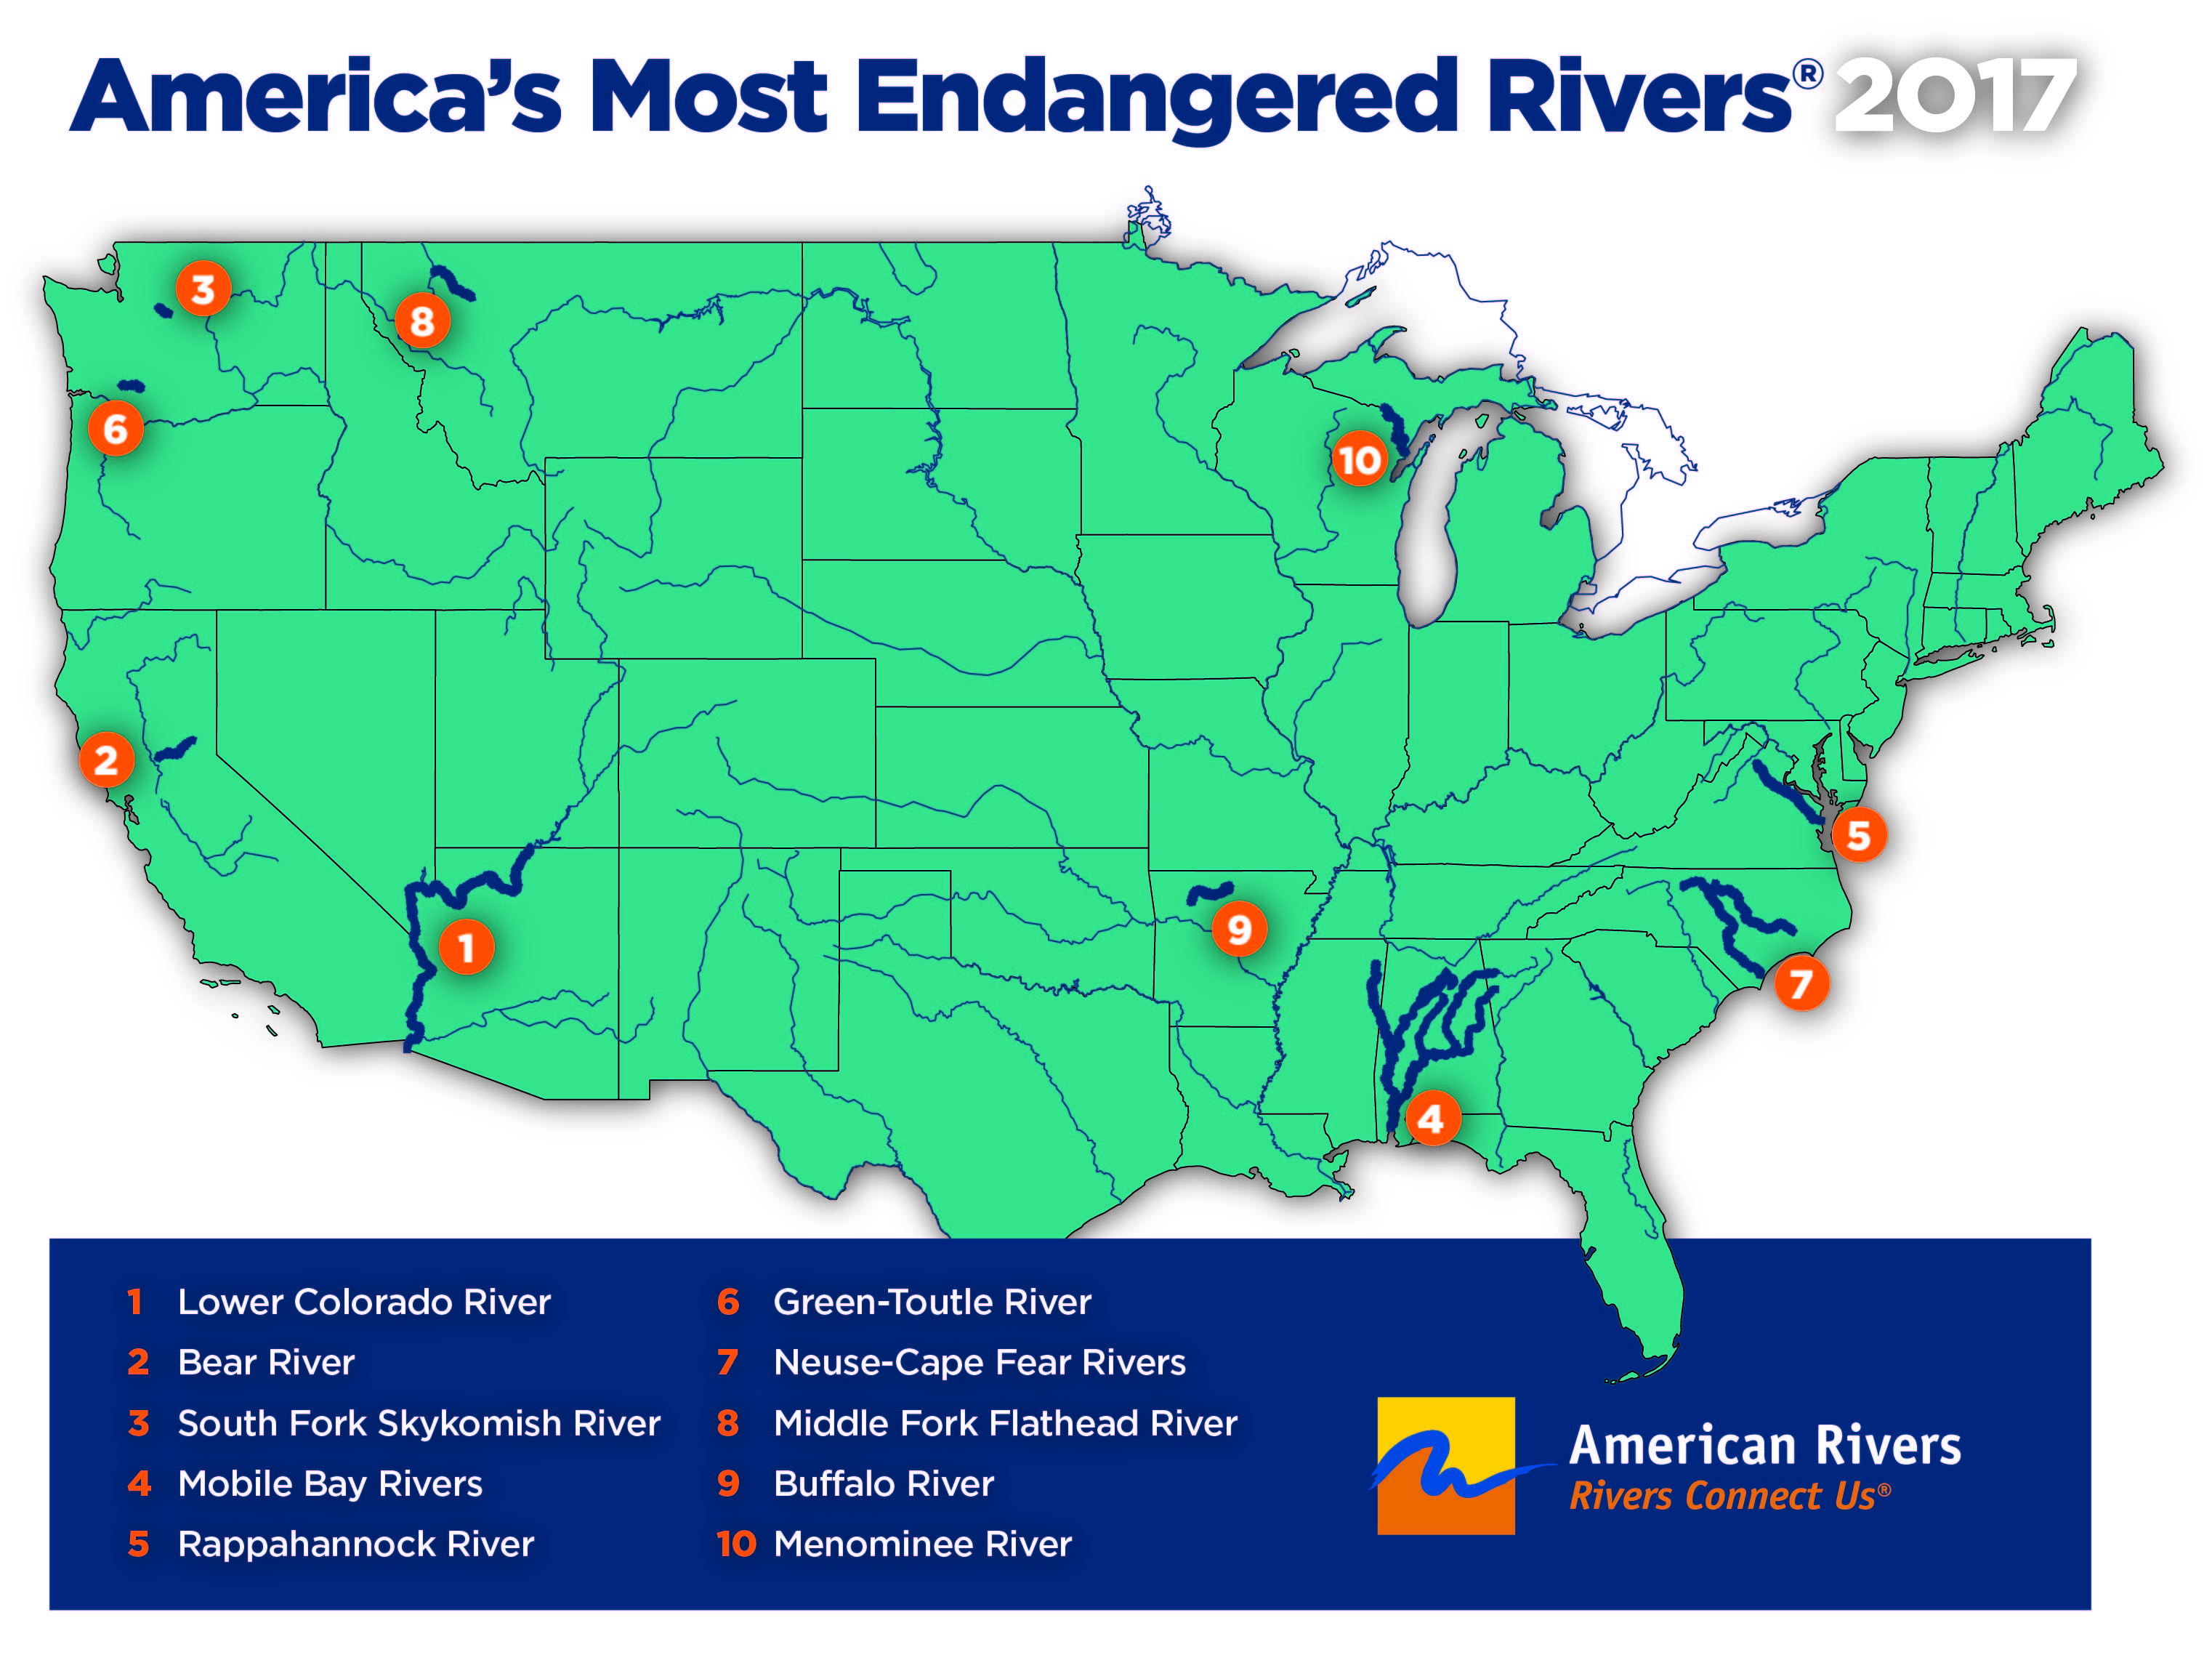 Map Of America Rivers.Bear River Among America S Most Endangered Rivers Of 2017 Yubanet